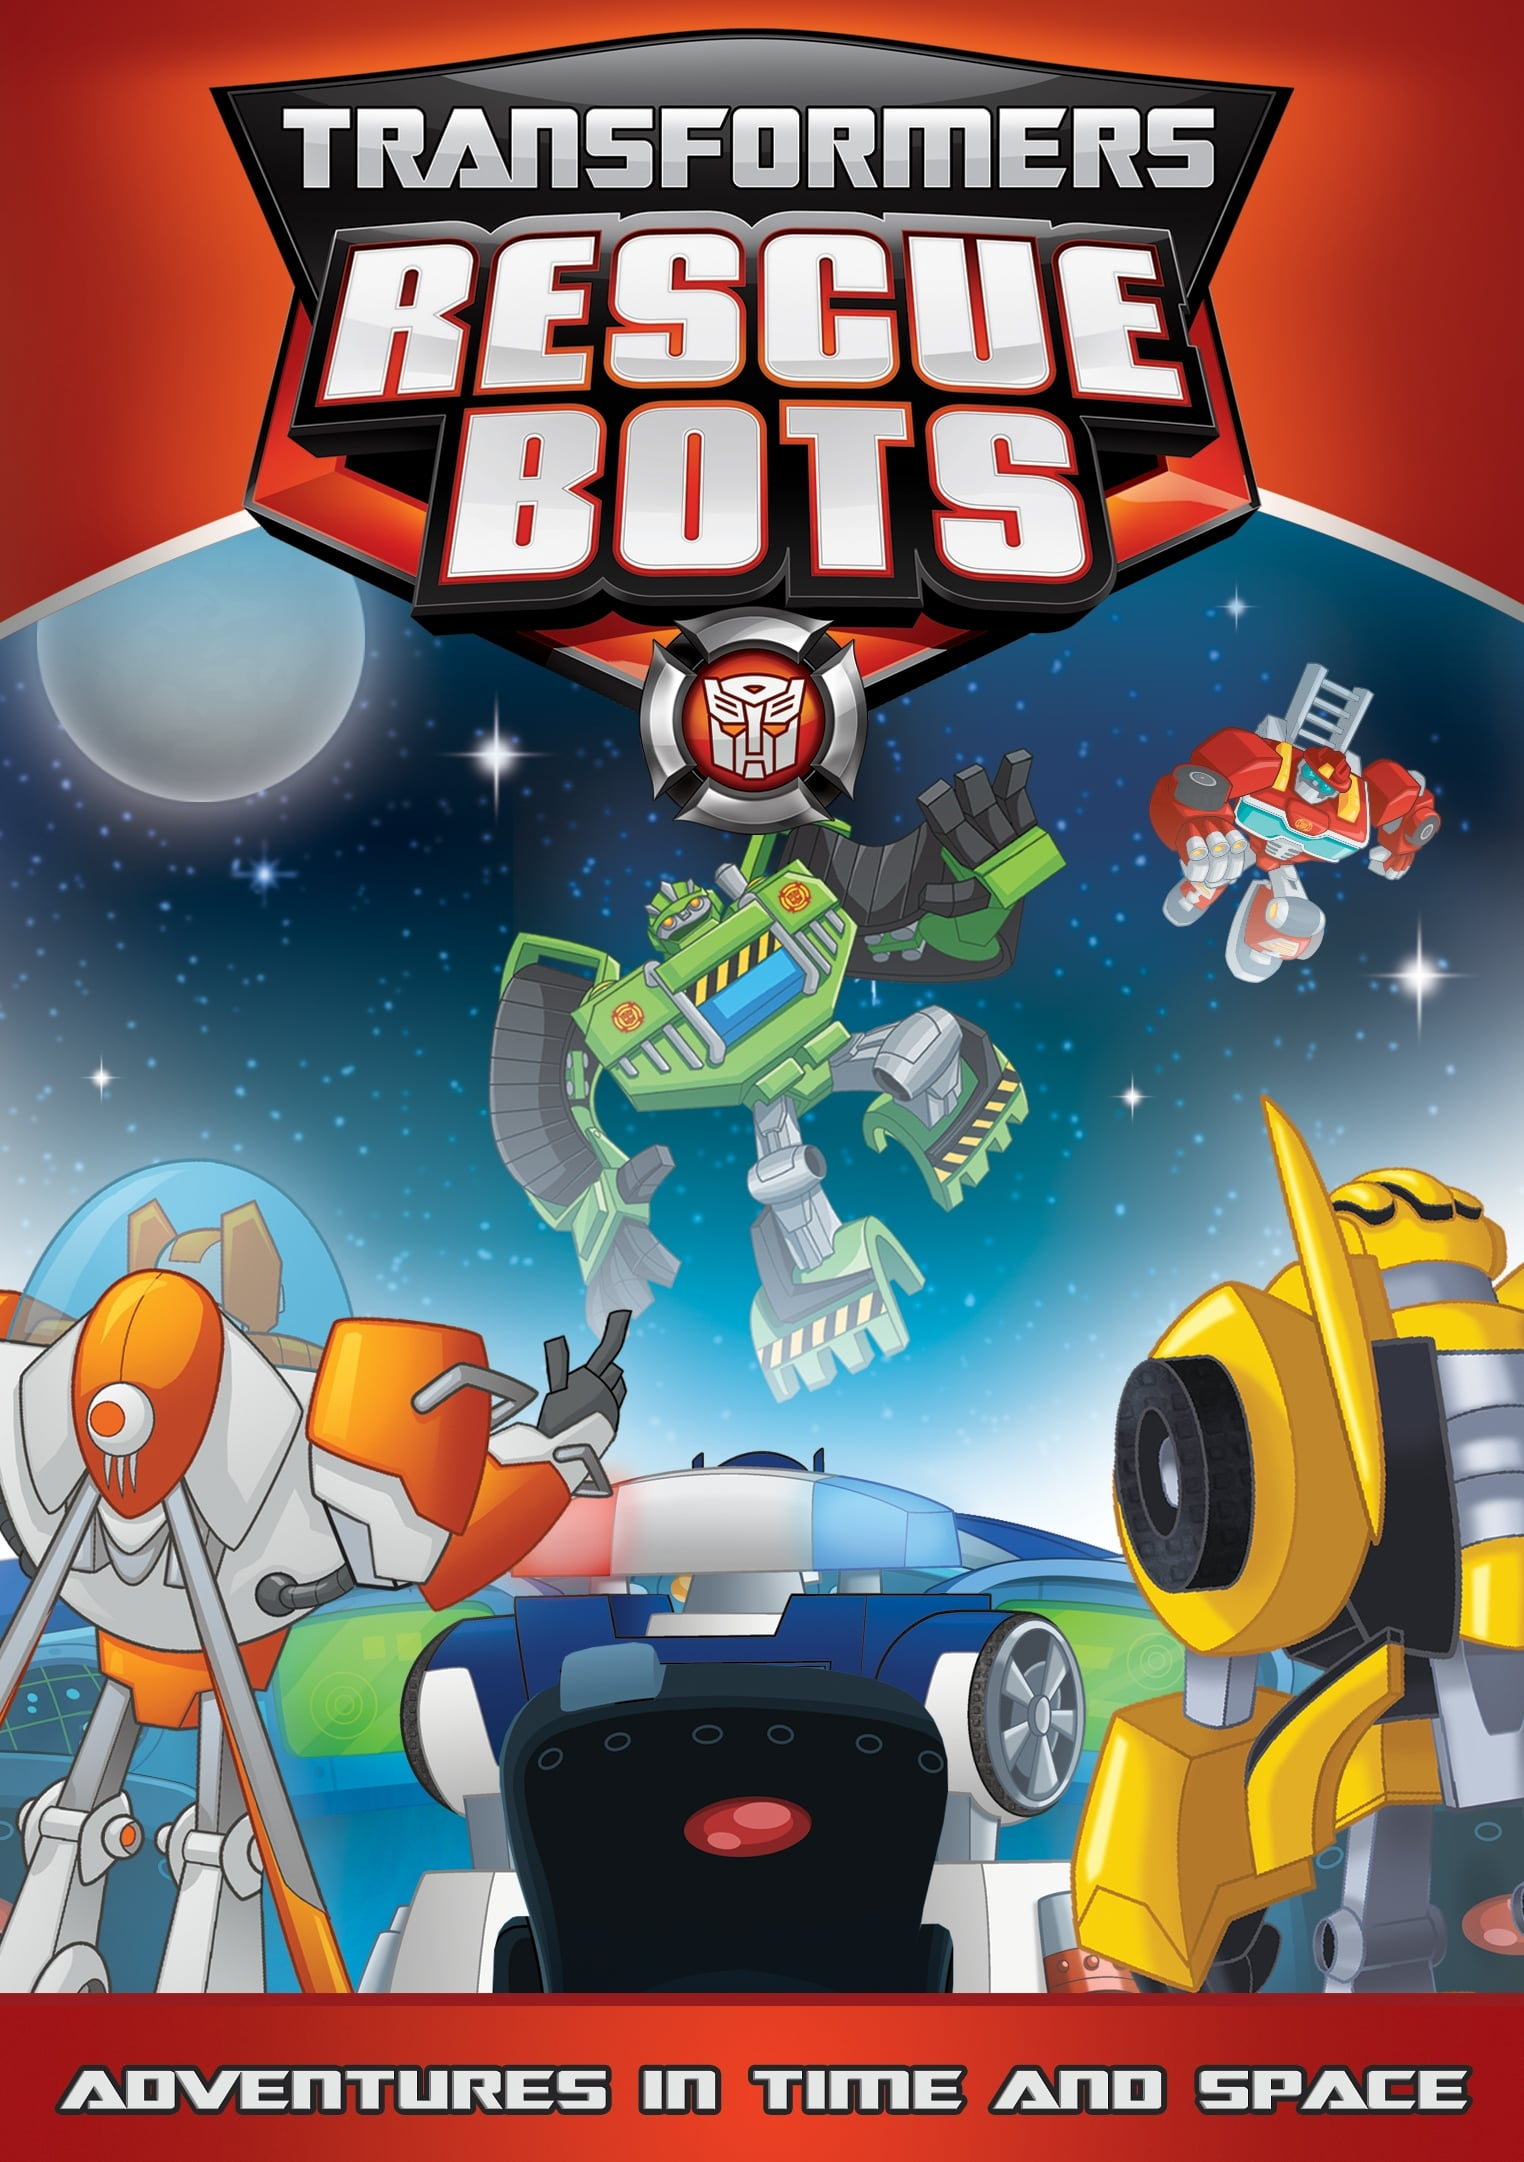 Transformers Rescue Bots: Adventures in Time and Space (1970)